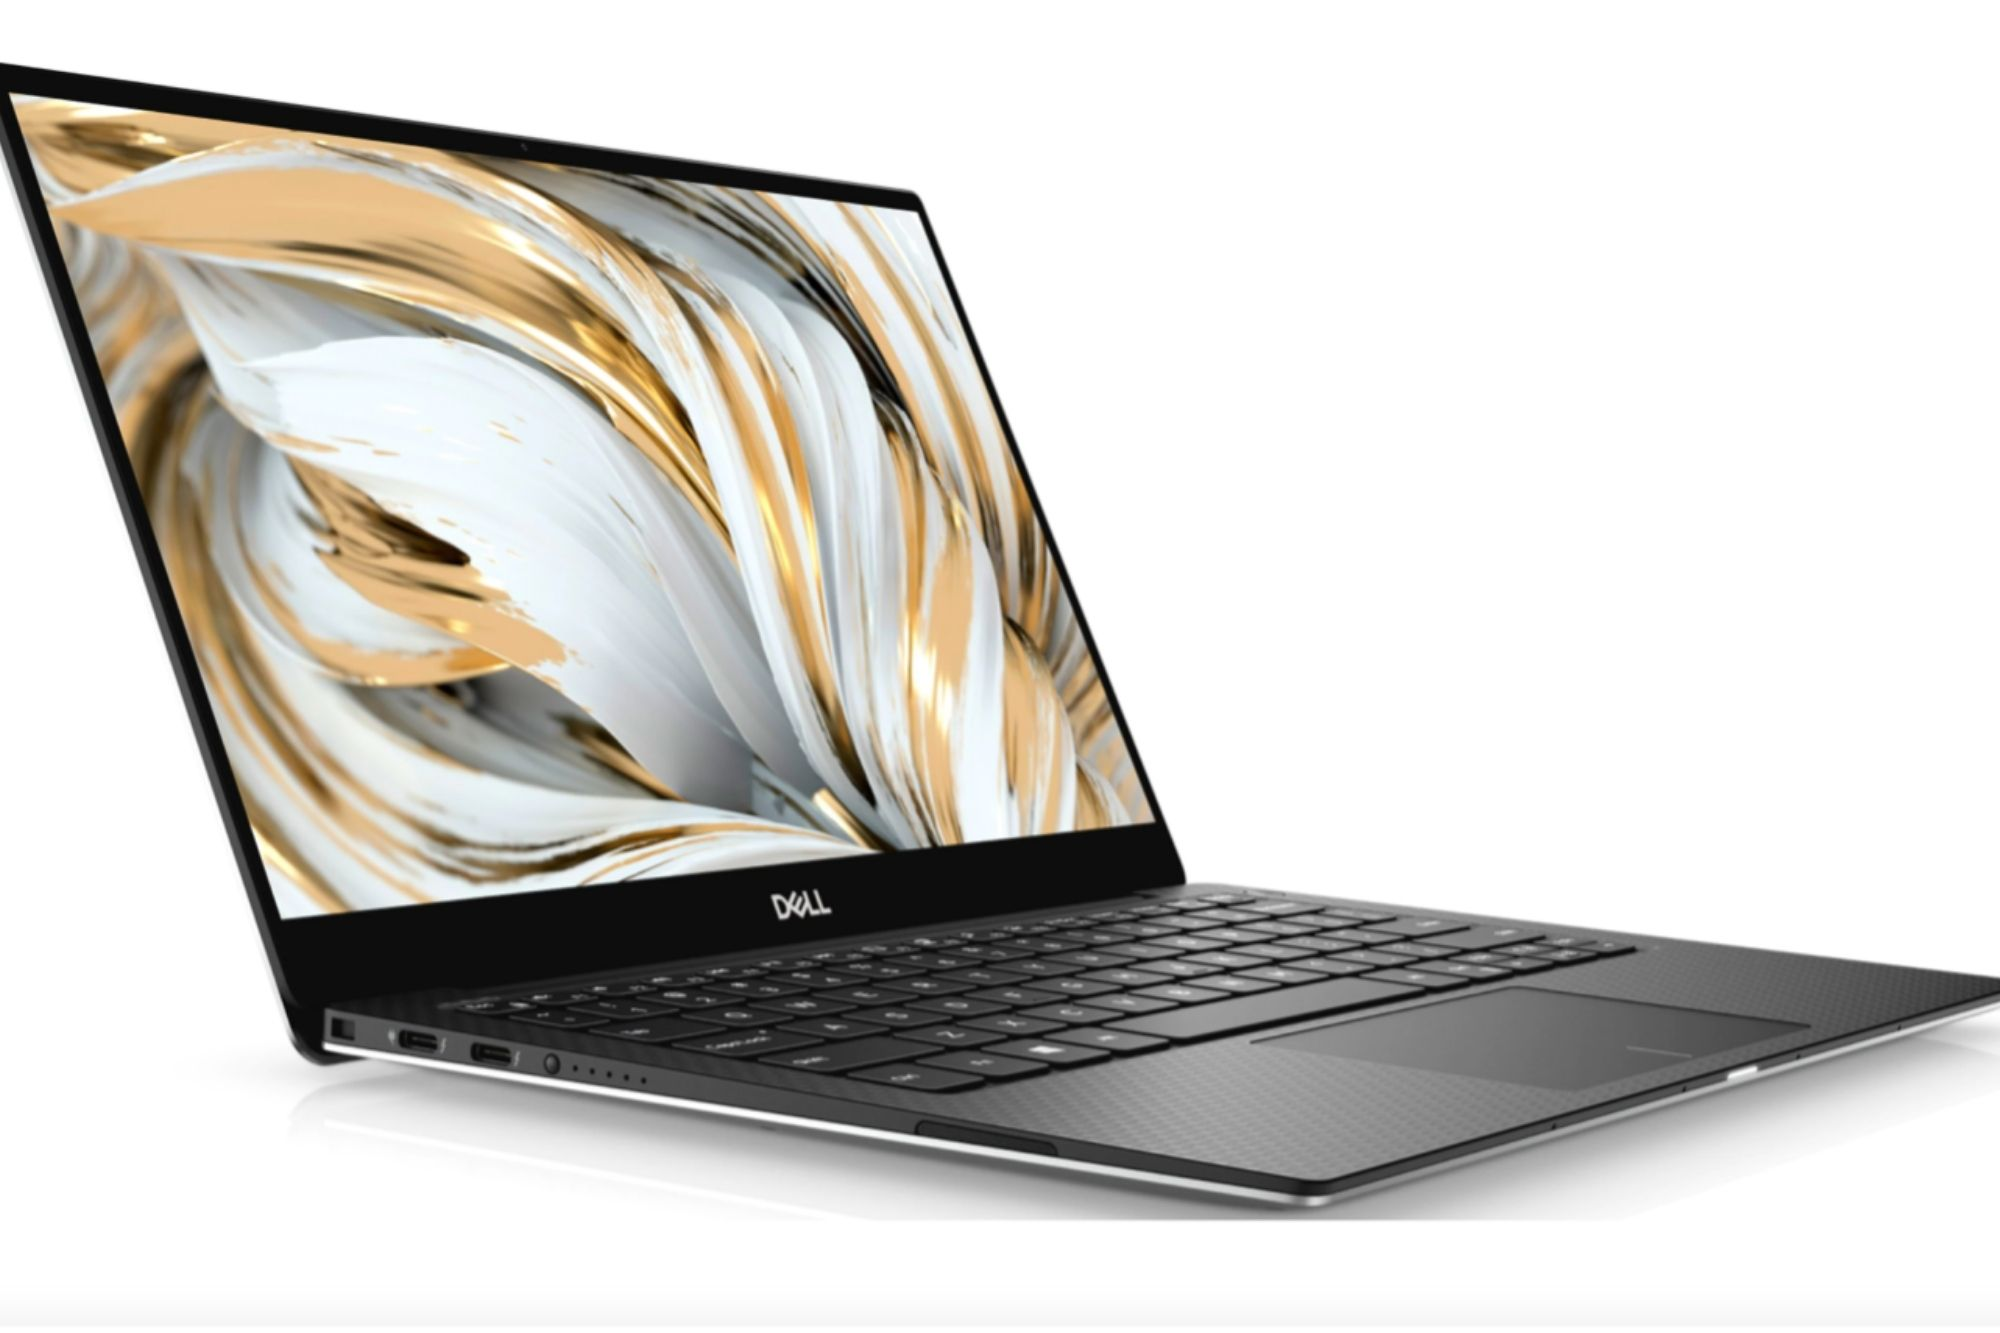 Best Laptop for Money Used